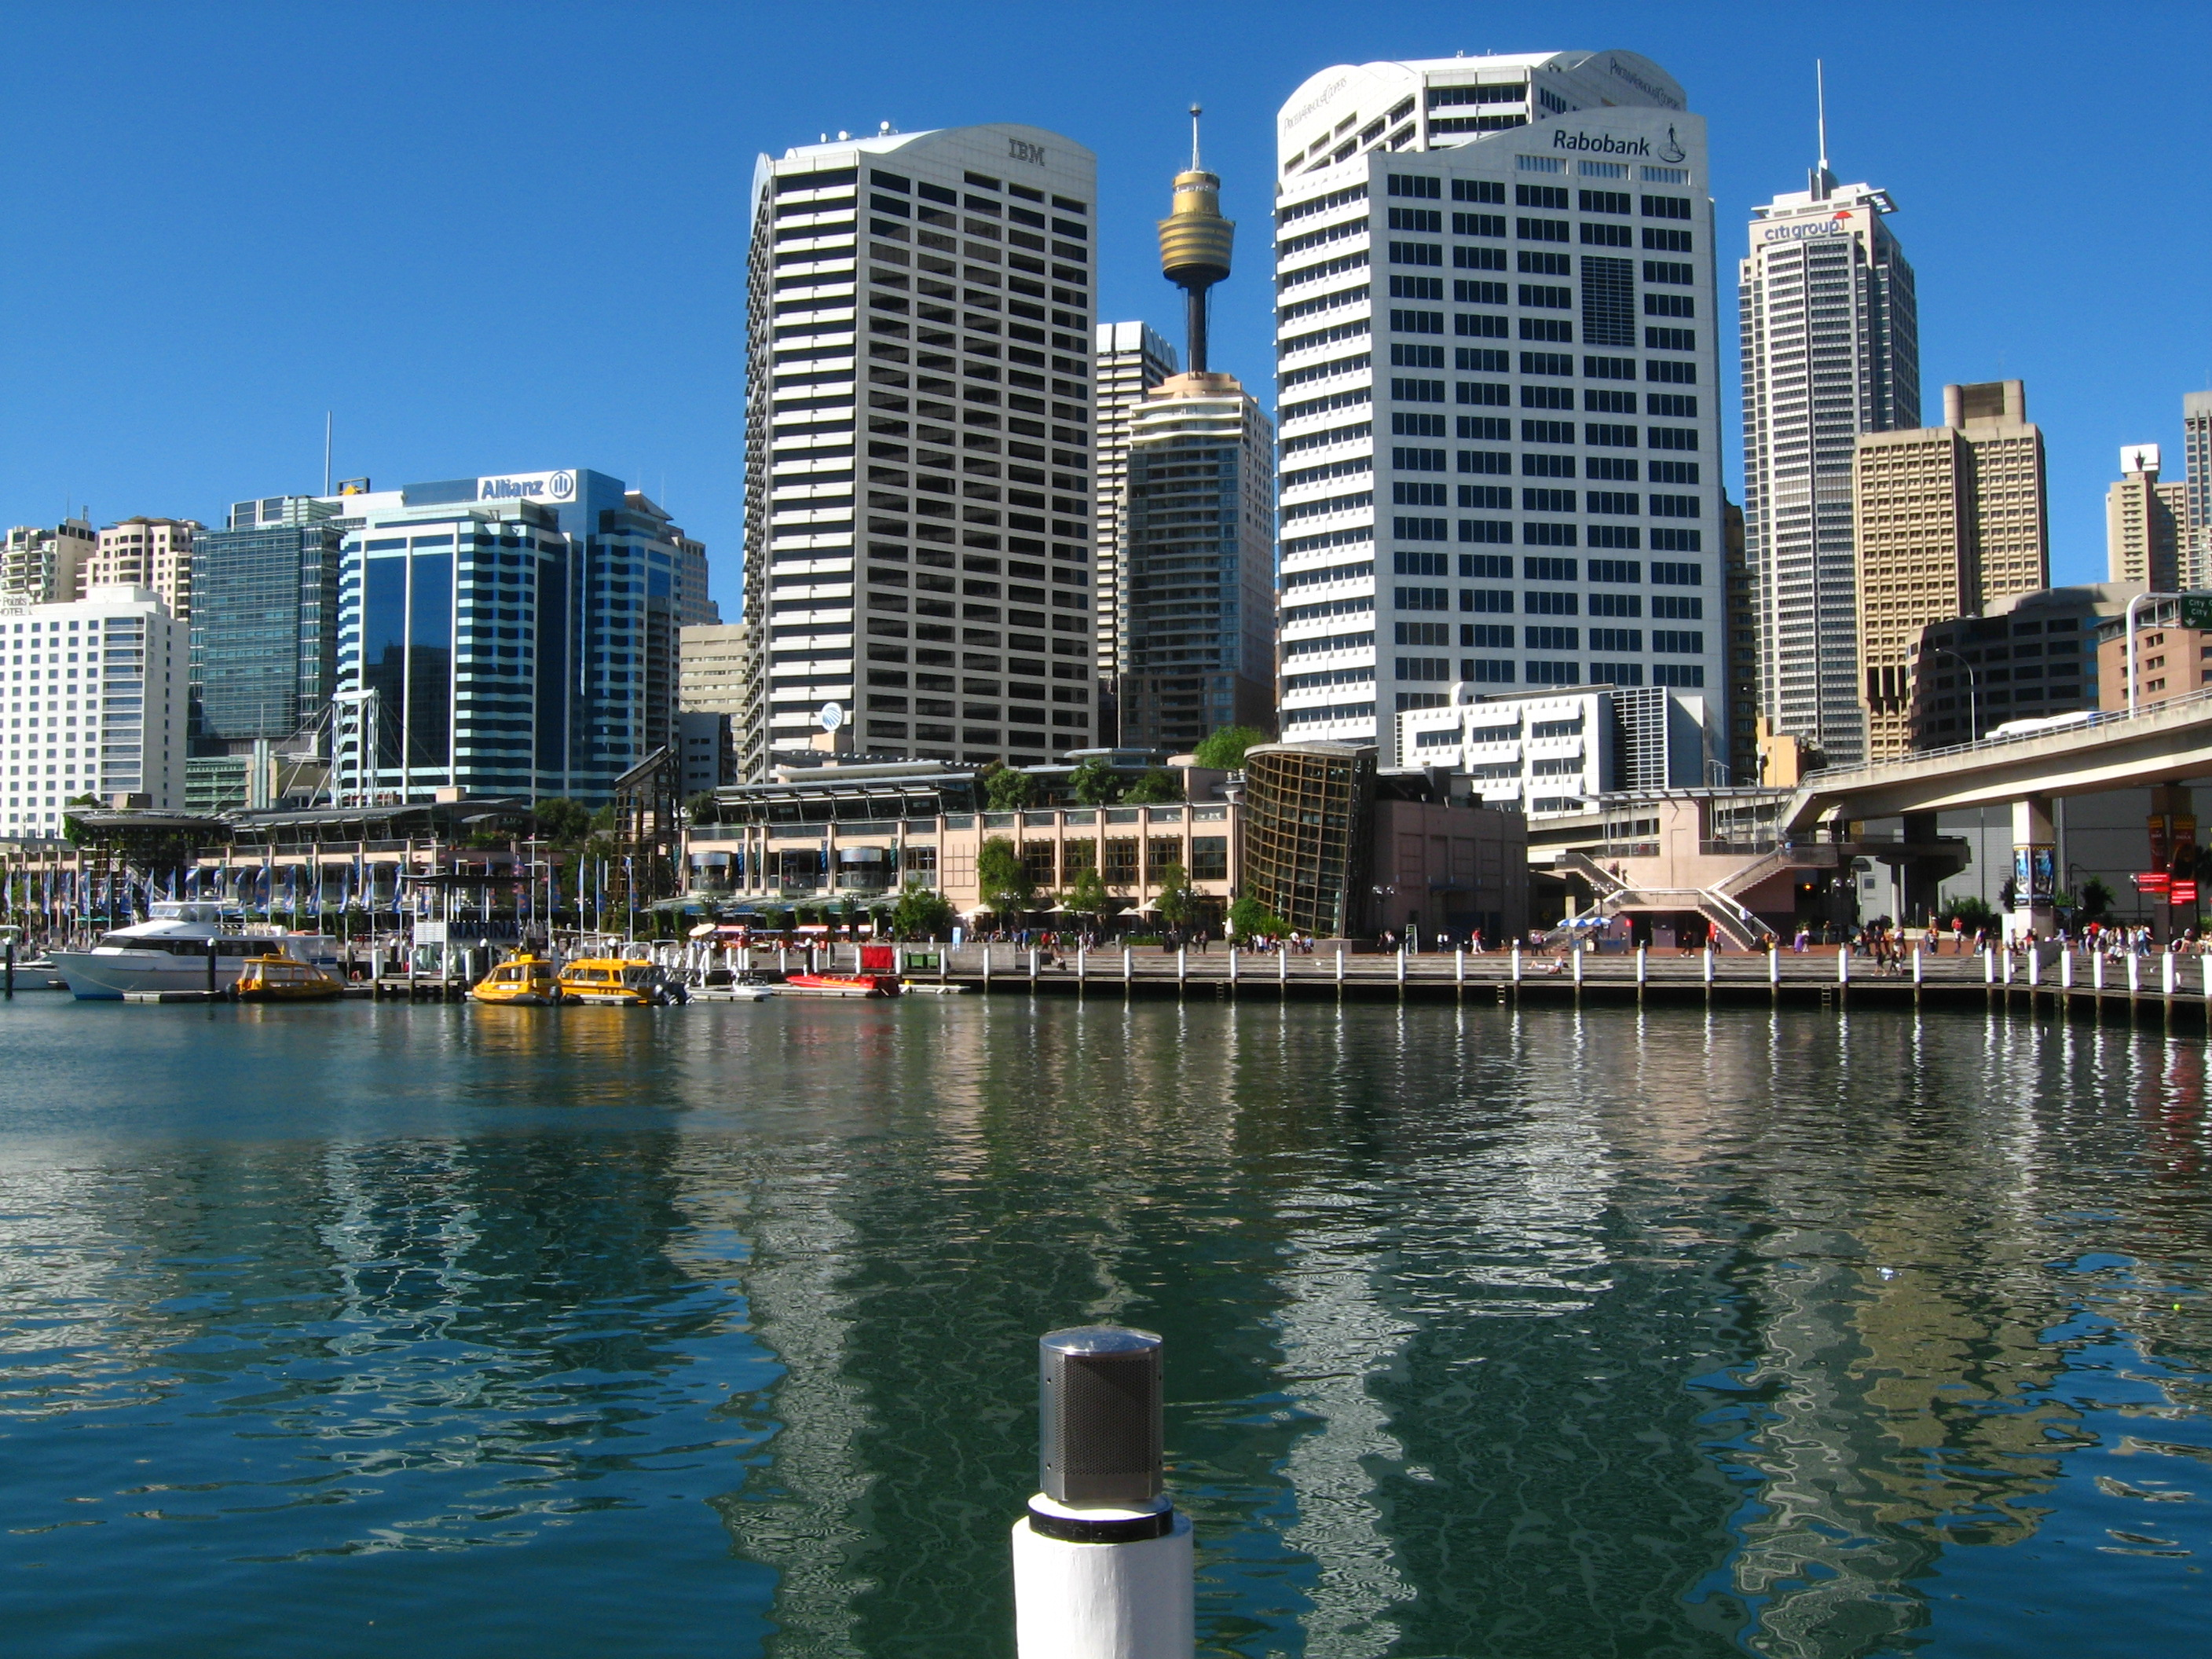 The Star Darling Harbour